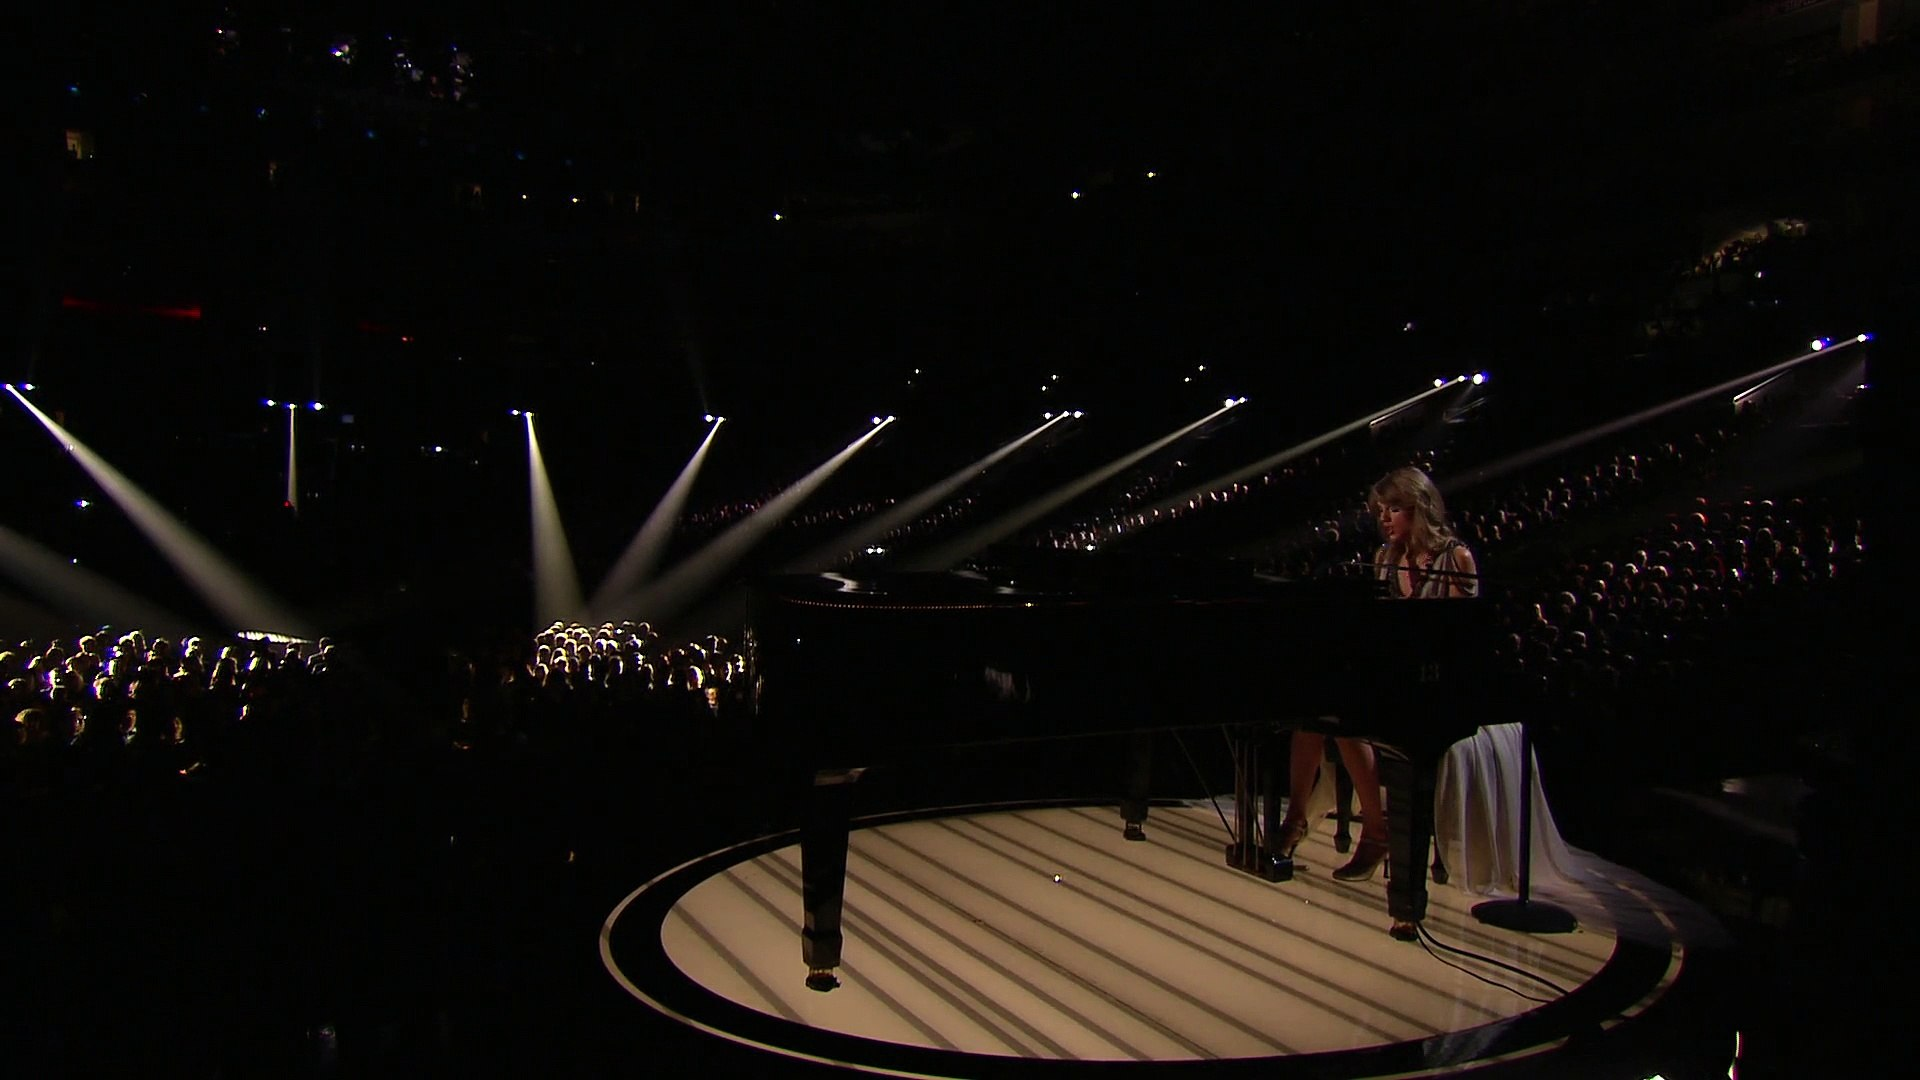 Grammy Awards (2014) - All Too Well